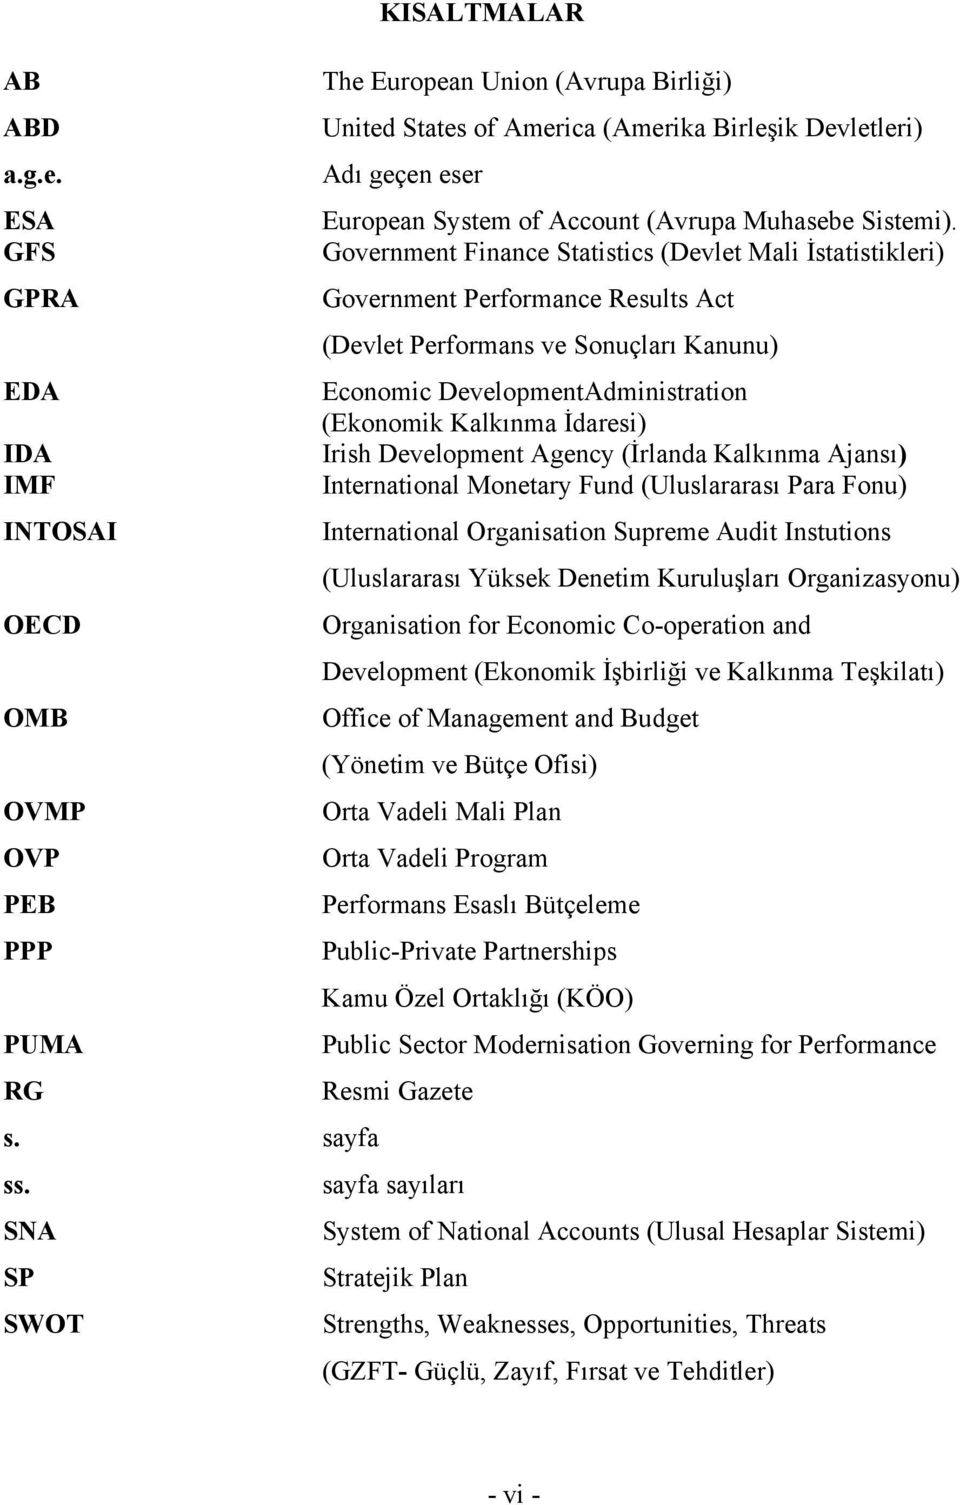 Kalkınma İdaresi) IDA Irish Development Agency (İrlanda Kalkınma Ajansı) IMF International Monetary Fund (Uluslararası Para Fonu) INTOSAI International Organisation Supreme Audit Instutions